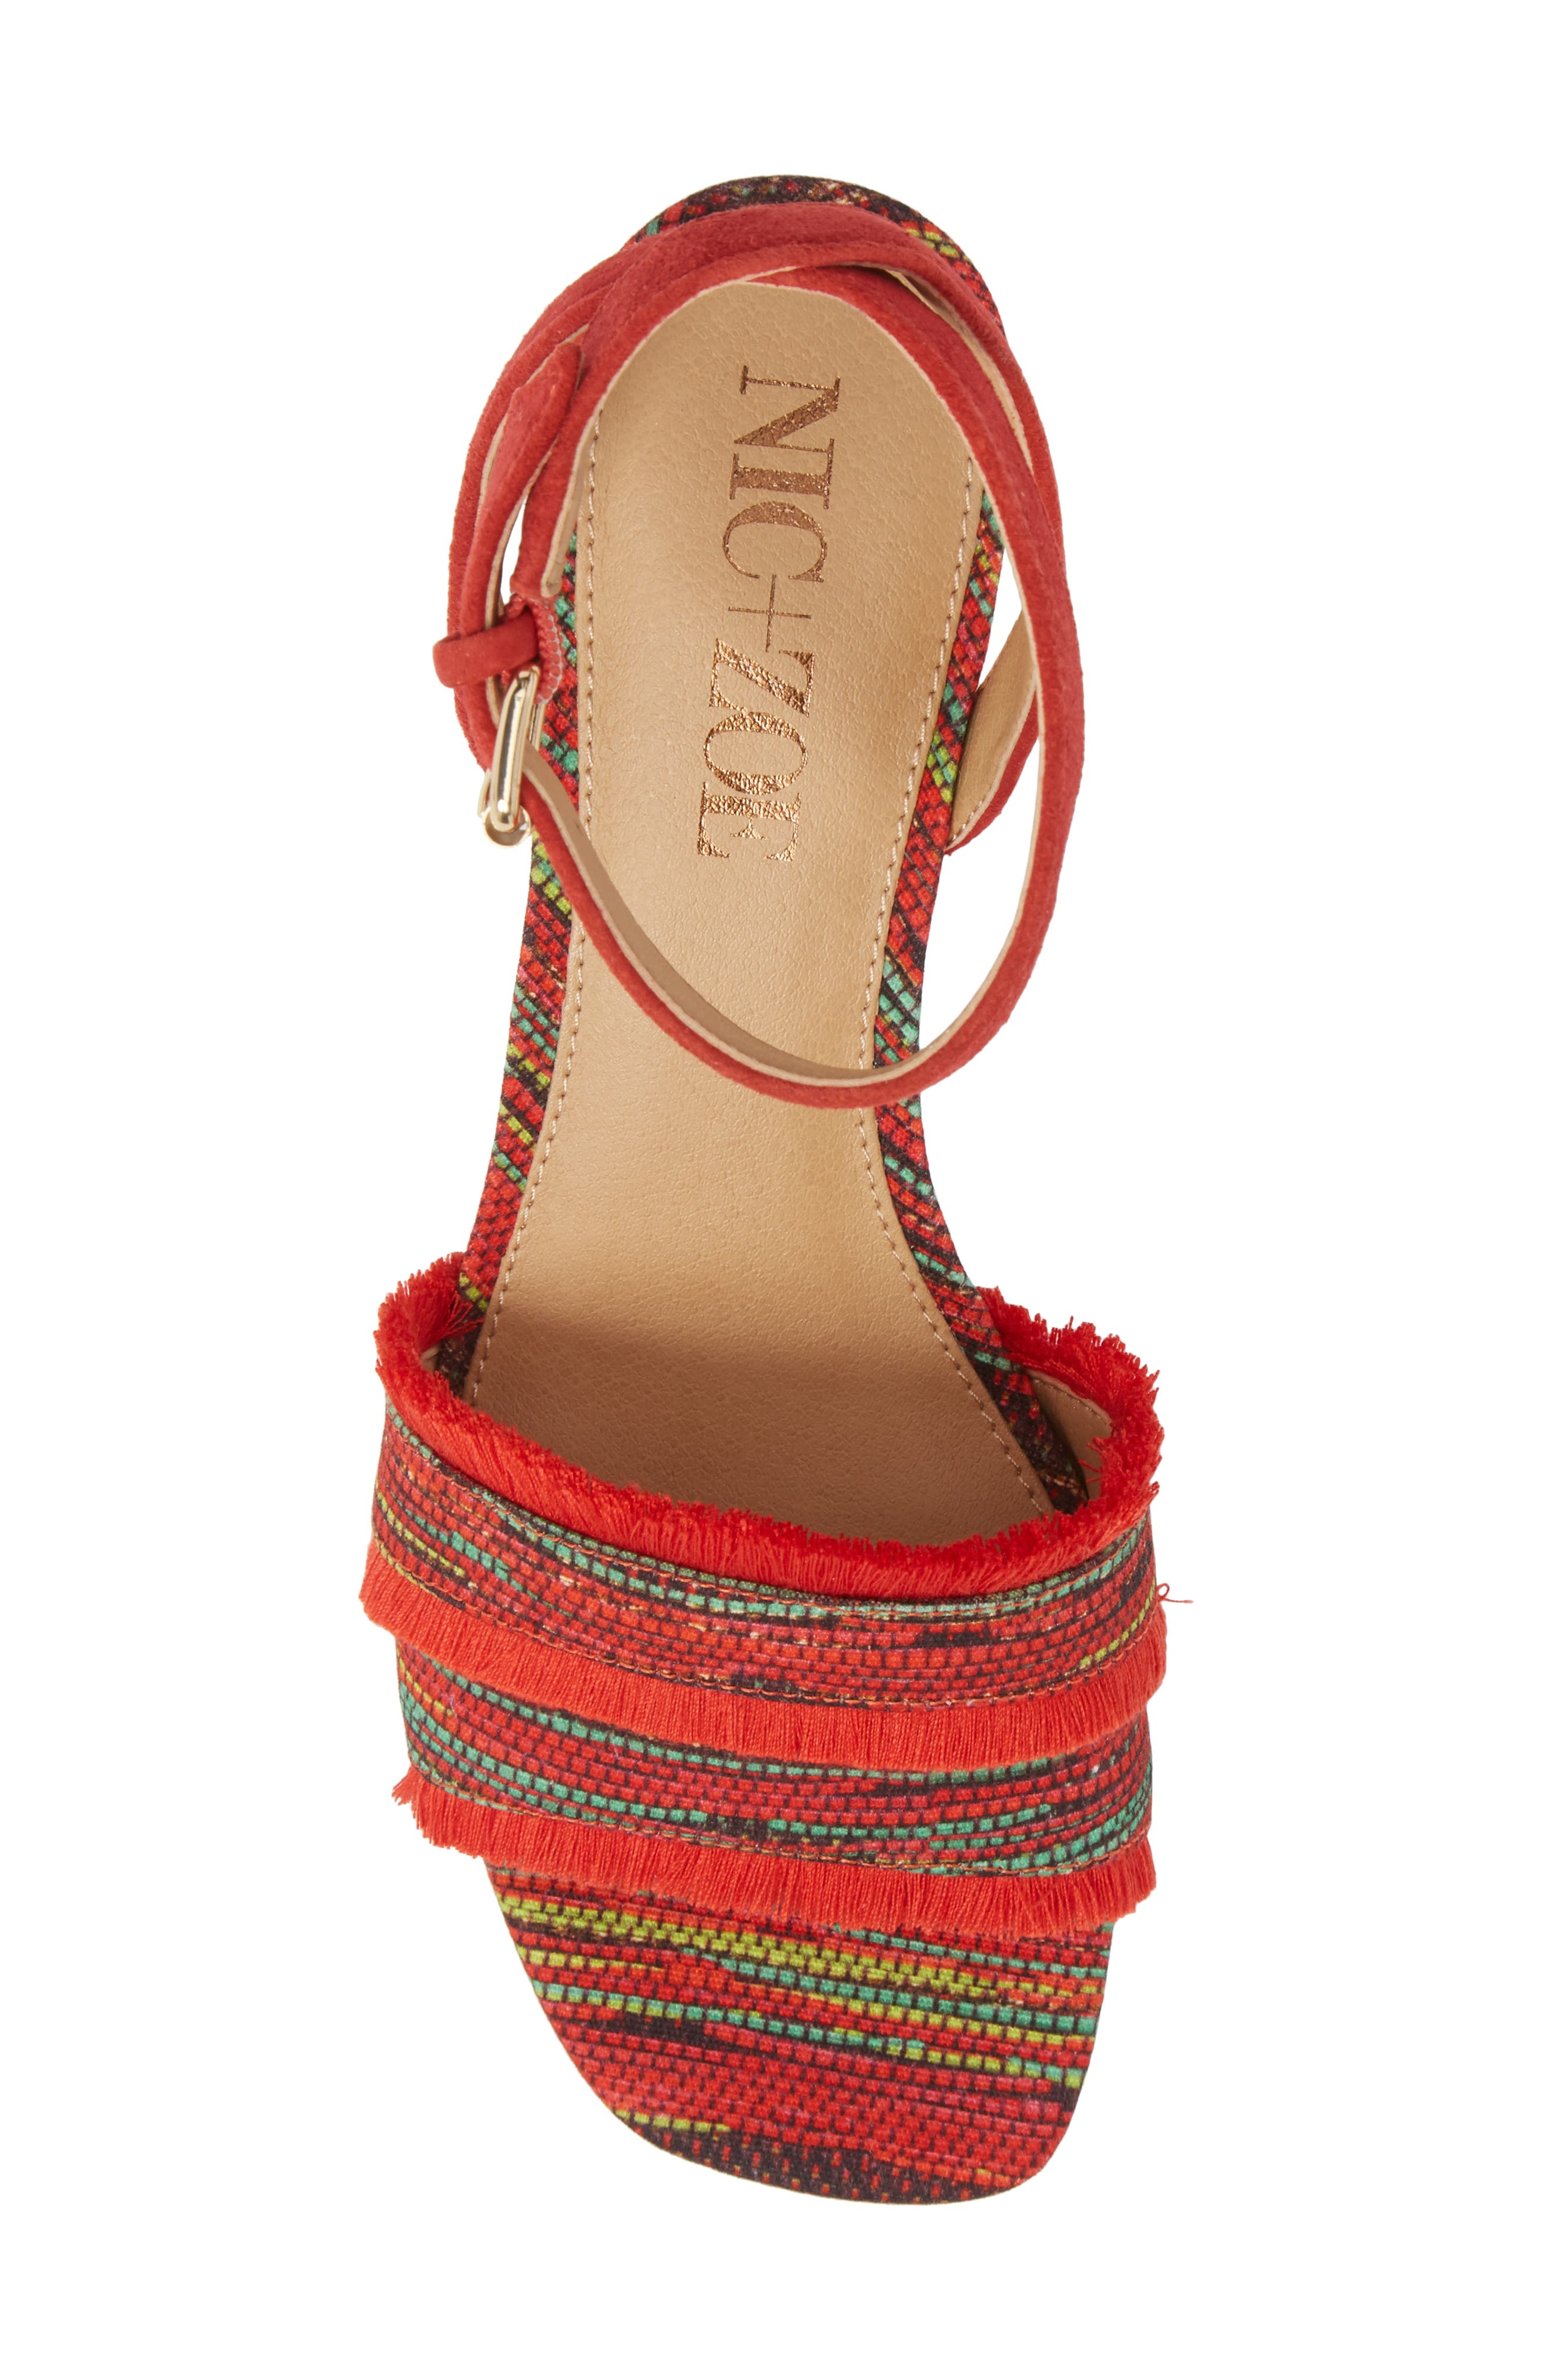 Zaria Fringed Sandal,                             Alternate thumbnail 5, color,                             Red Multi Fabric